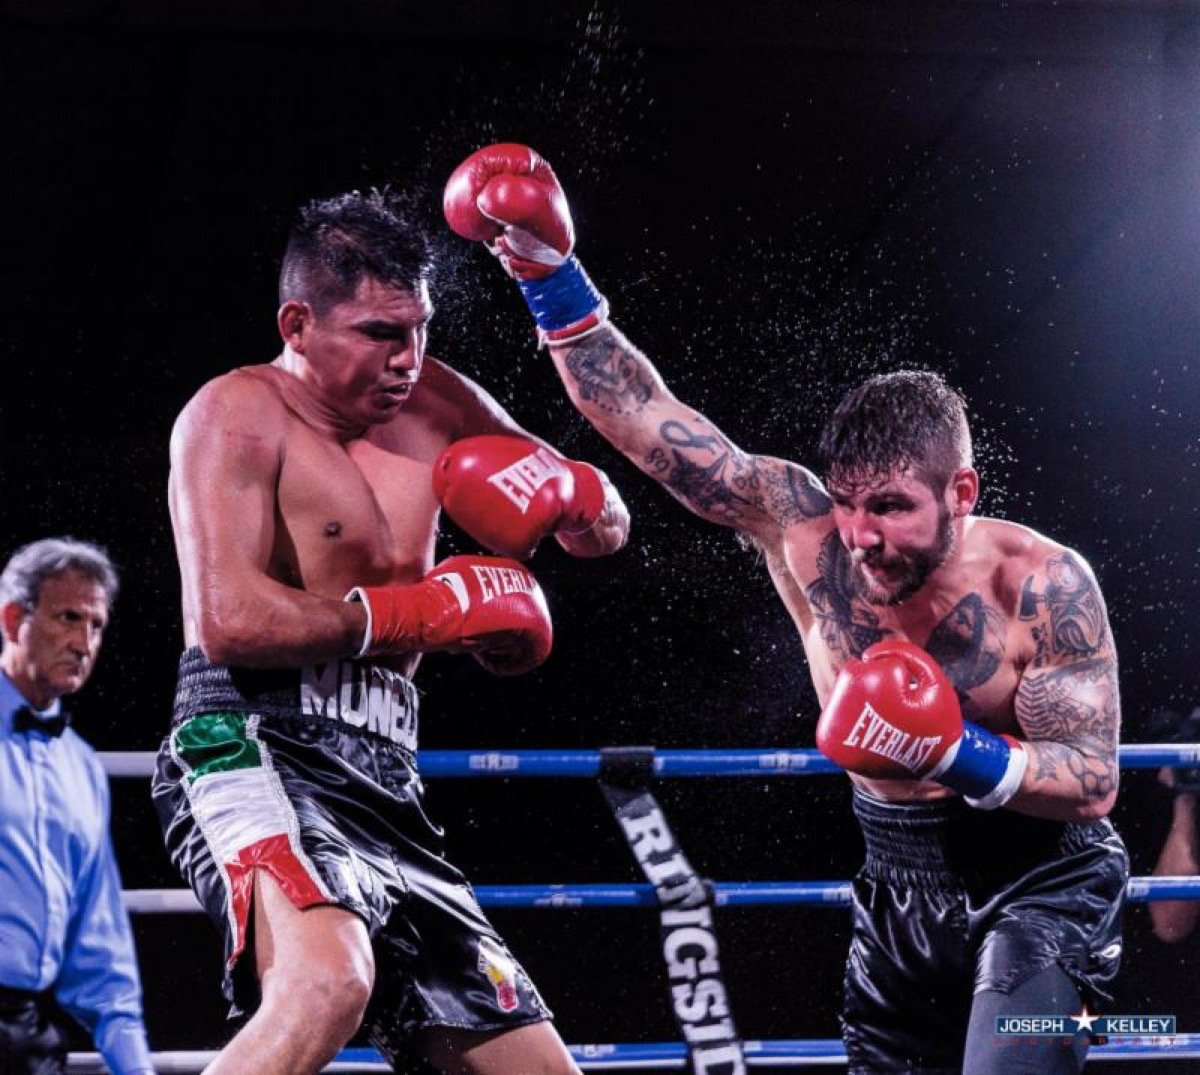 - A sold out crowd watched hometown hero, Greg Vendetti (21-3-1, 12 KOs) break down Alan Zavala (15-4, 13 KOs) over 10 exciting rounds to win a unanimous decision last night at Melrose, Massachusetts' historic fight venue, Memorial Hall.